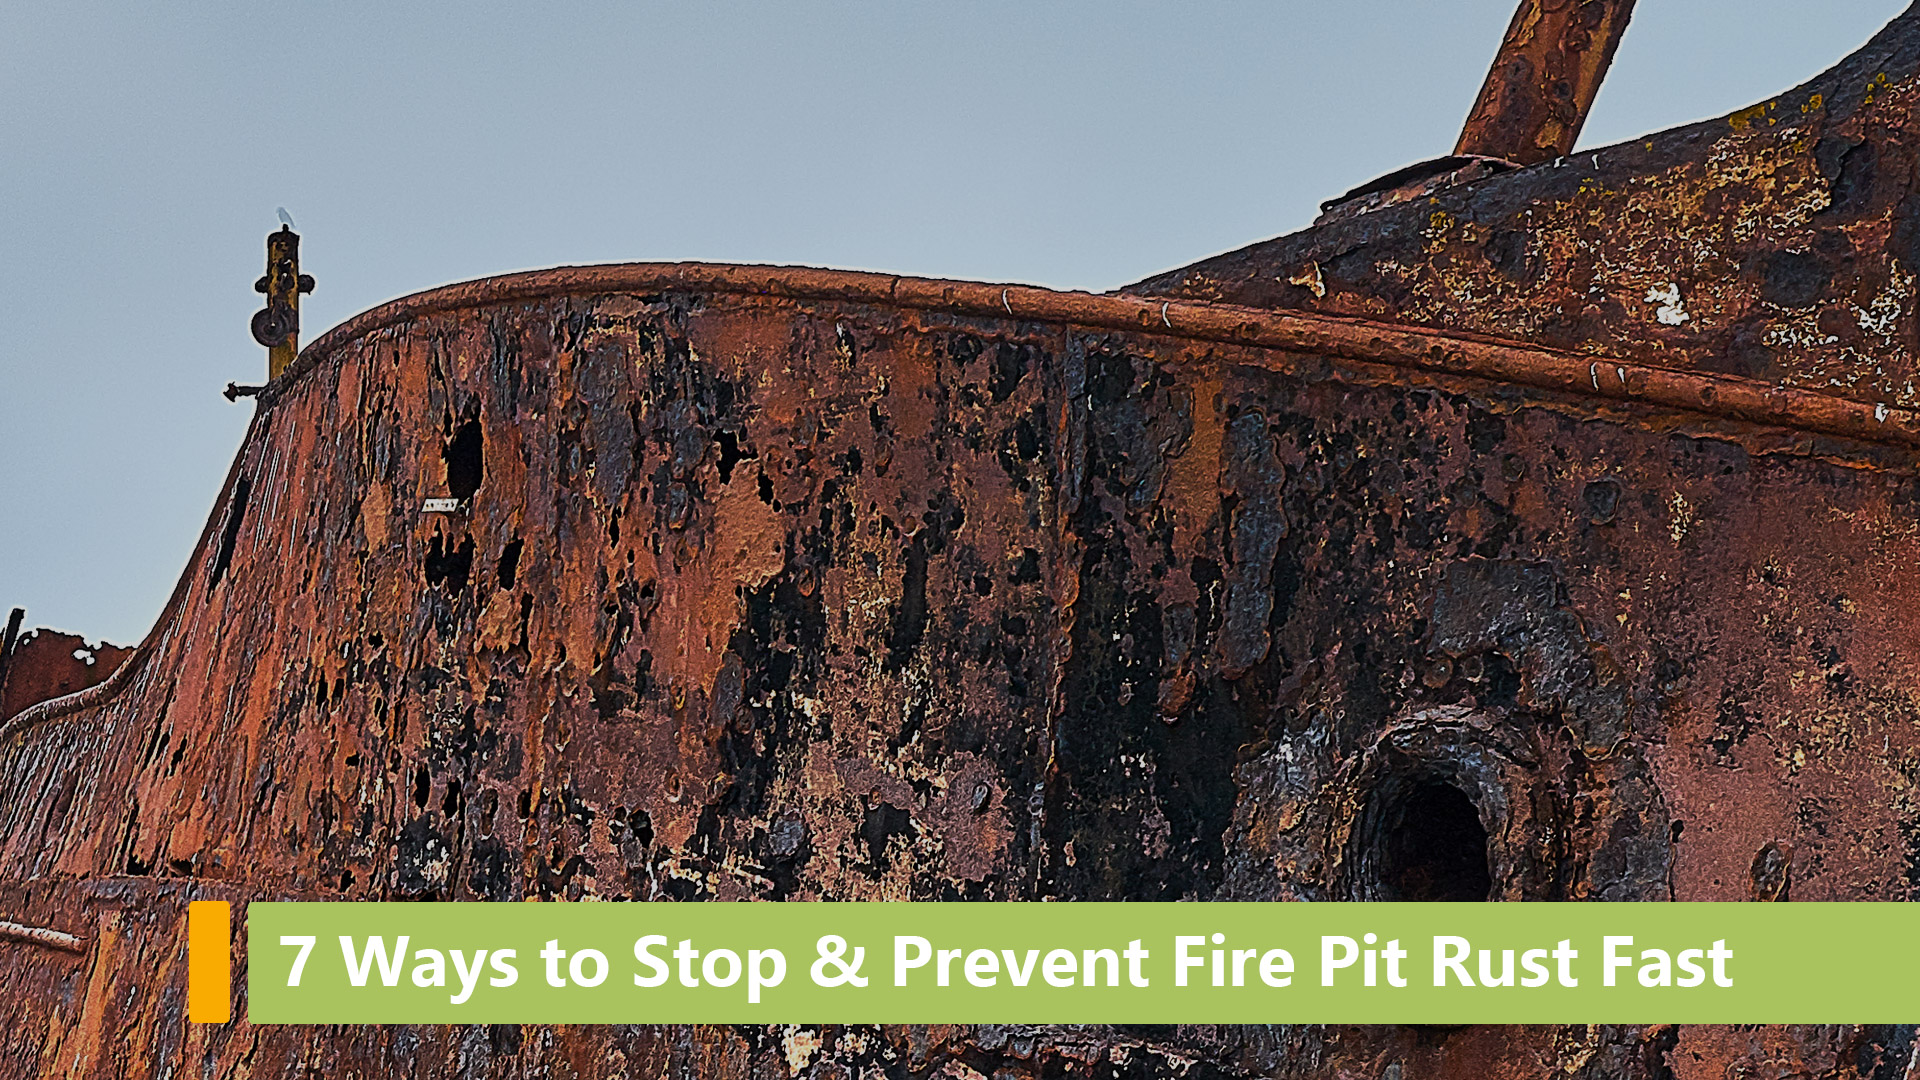 7 ways to stop fire pit rust fast main